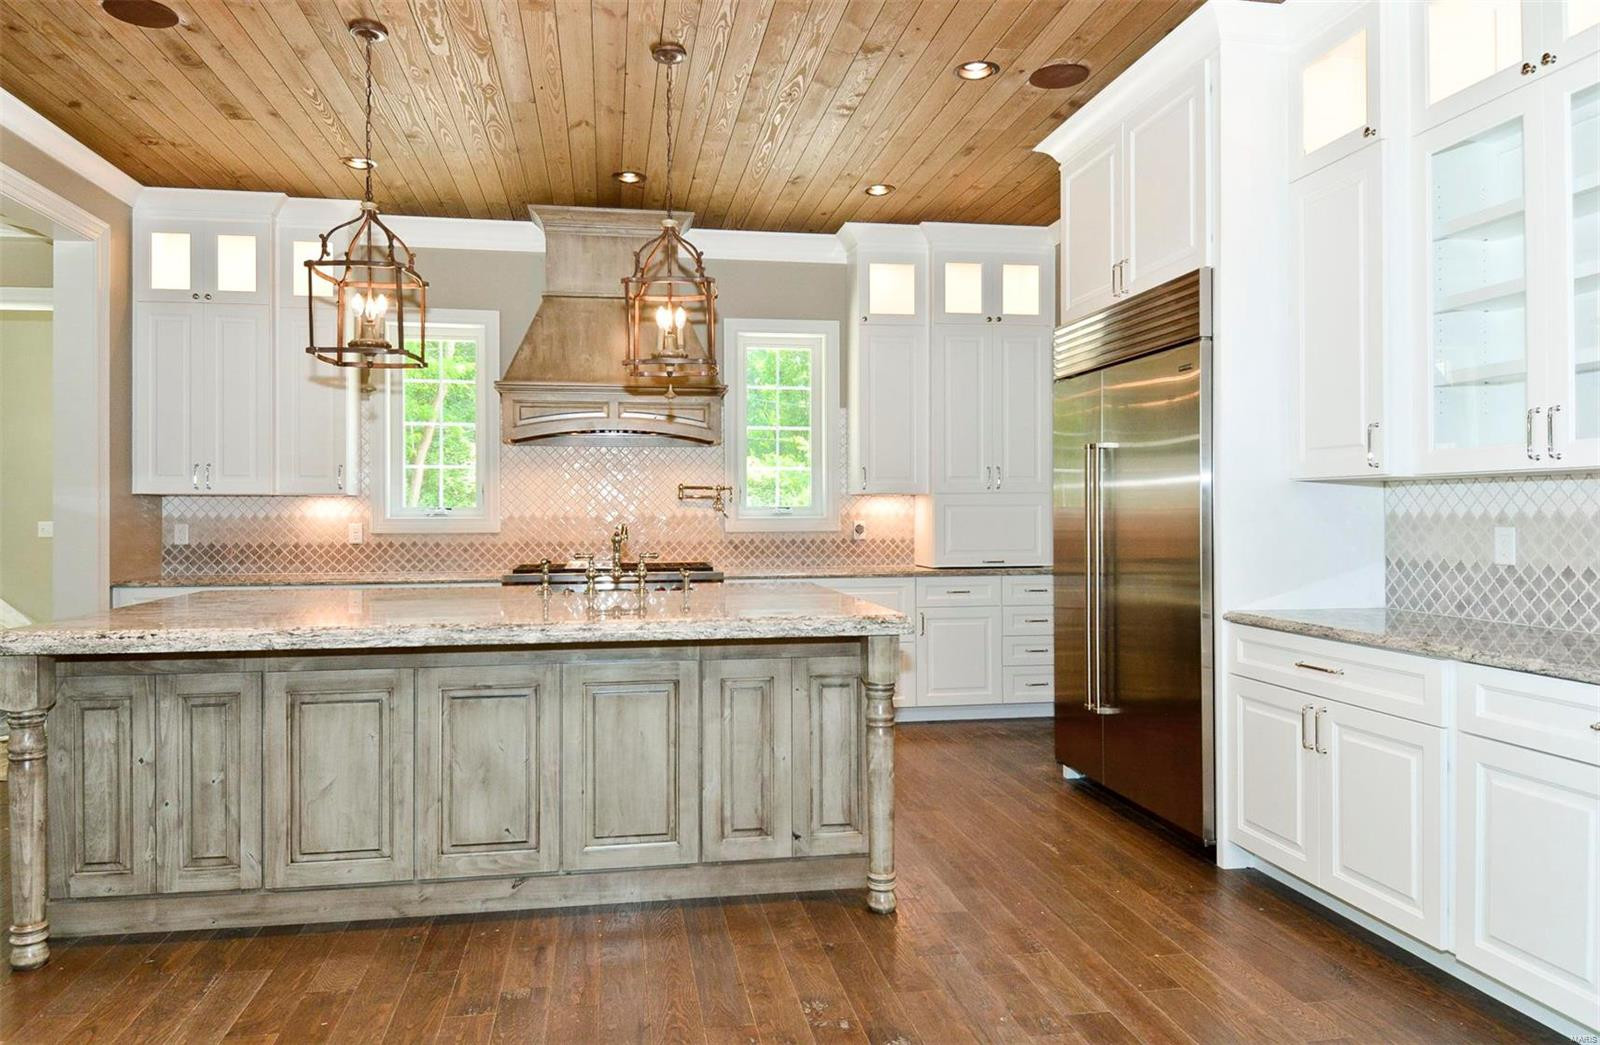 unfinished hardwood flooring st louis of homes for sale find homes in missouri with regard to louis resd 58325168 15